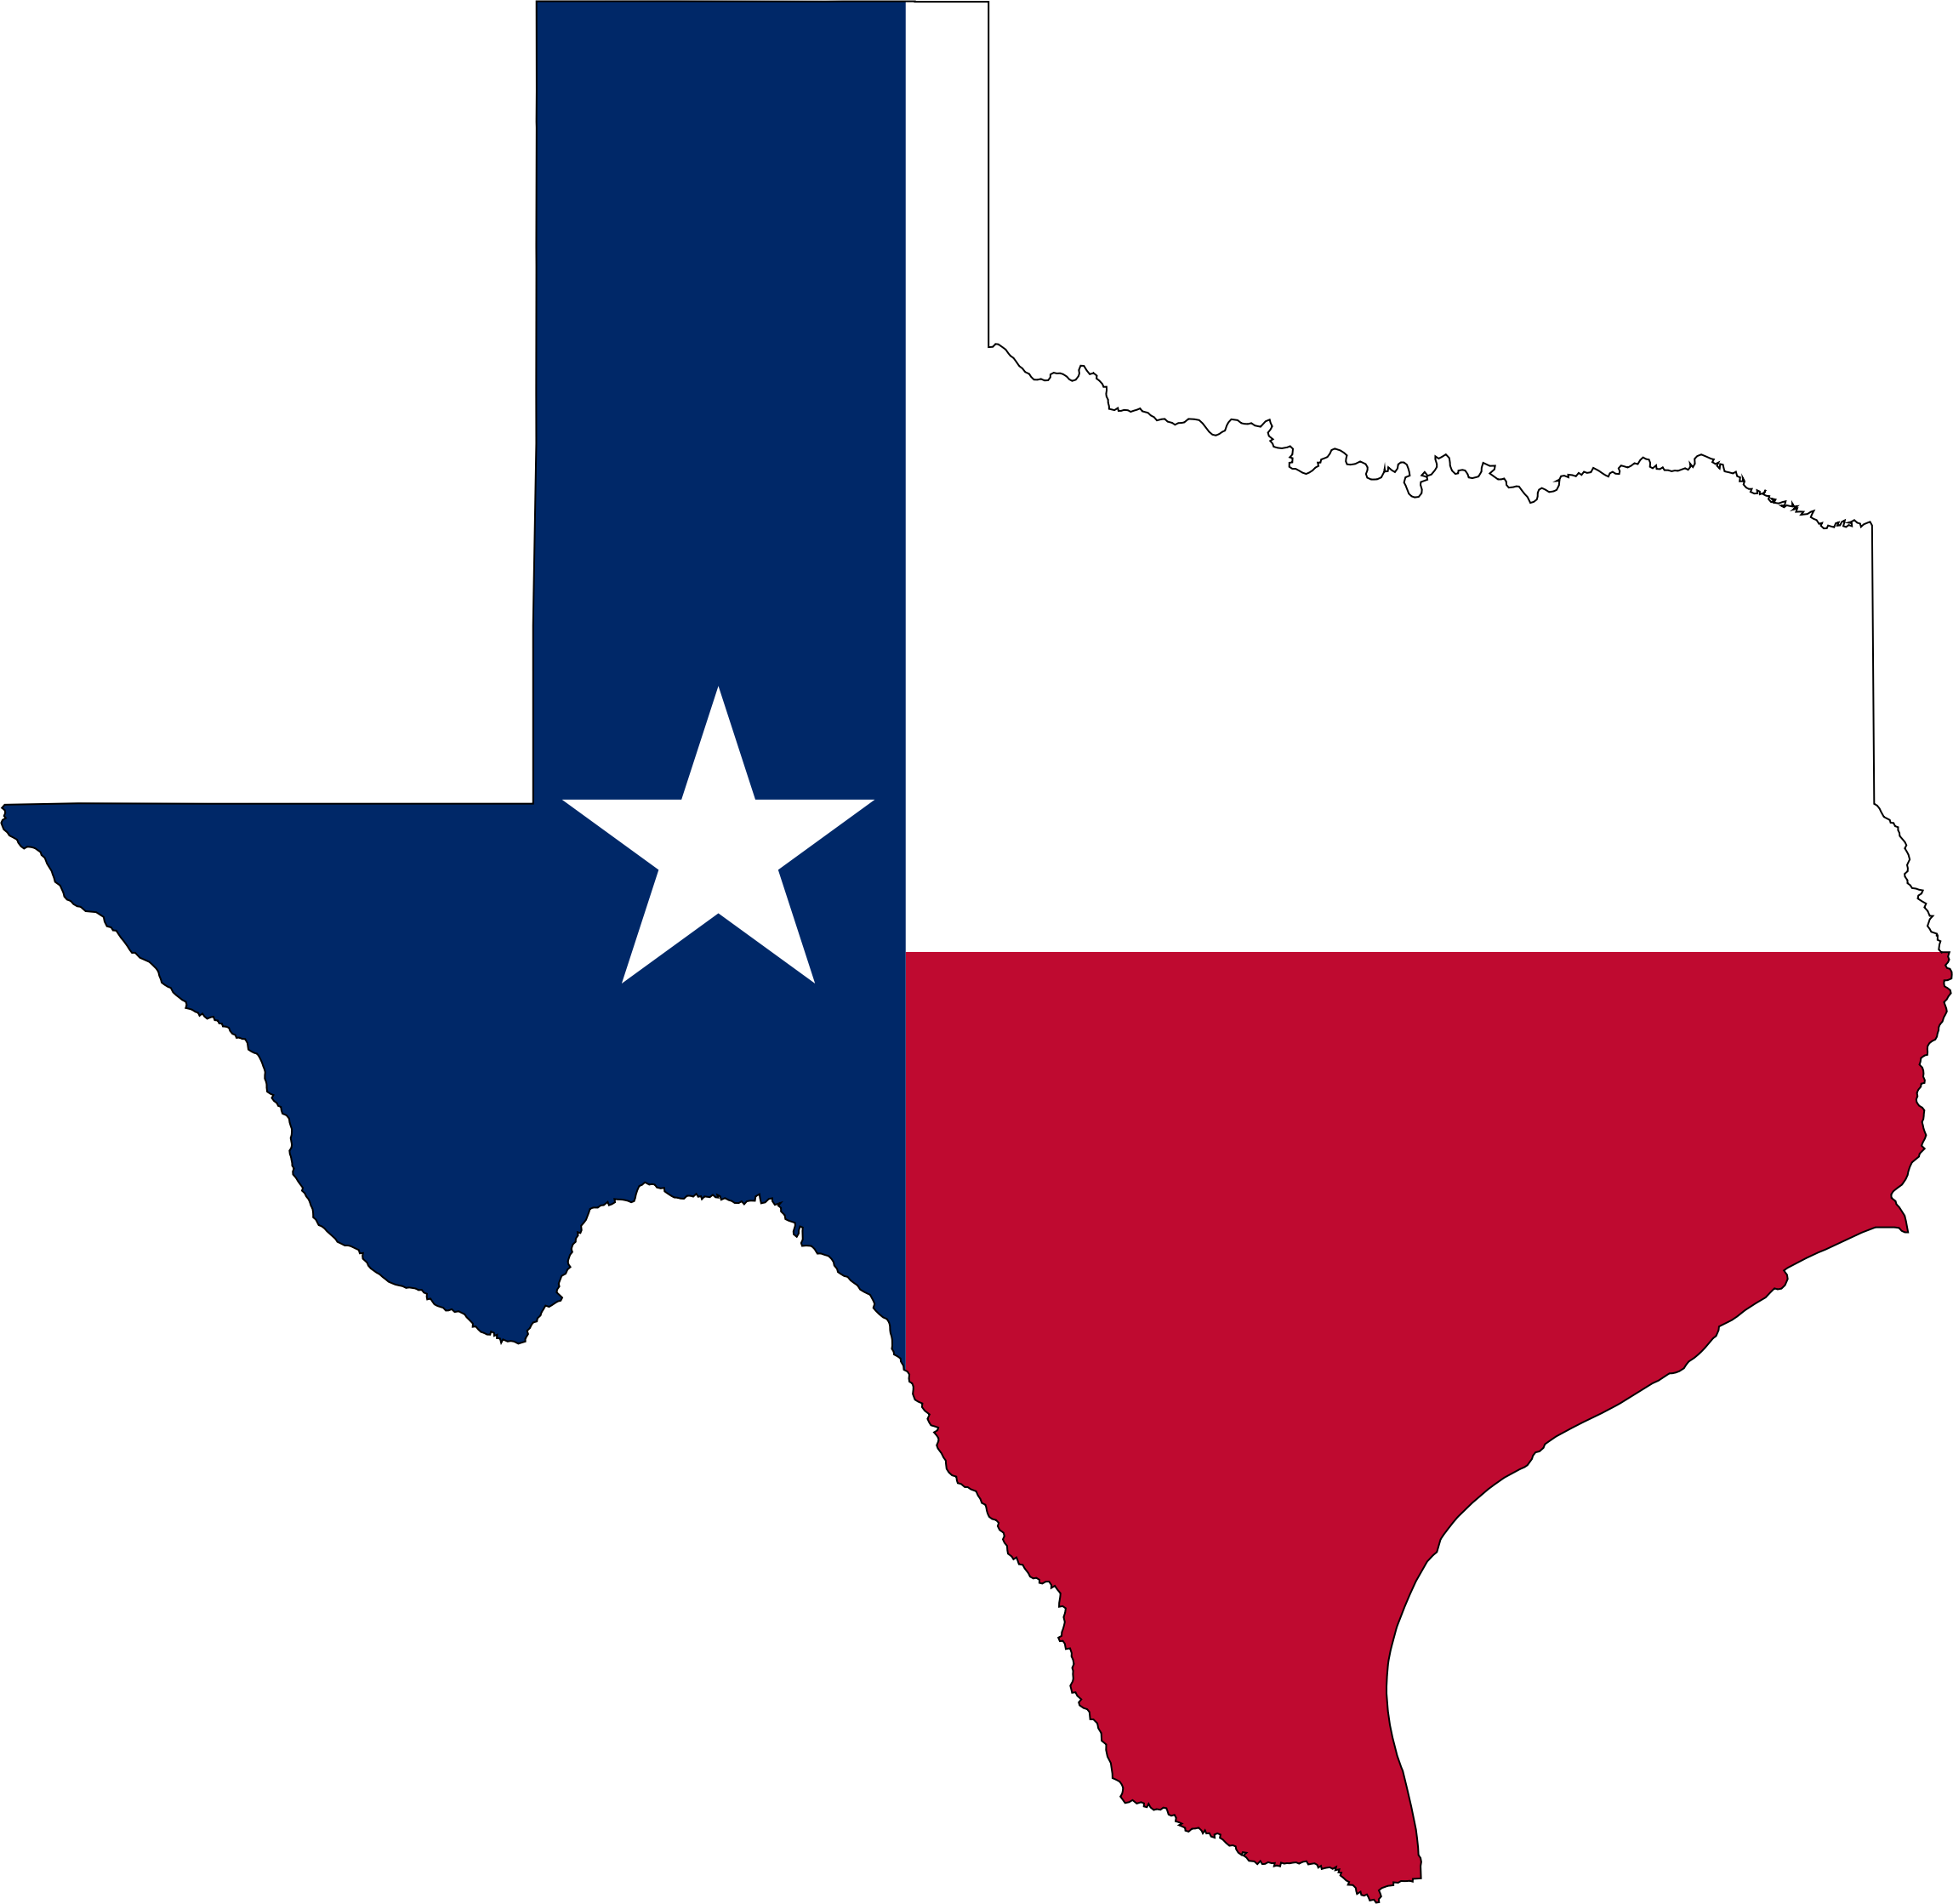 texas state flag map. clipart  texas state flag map